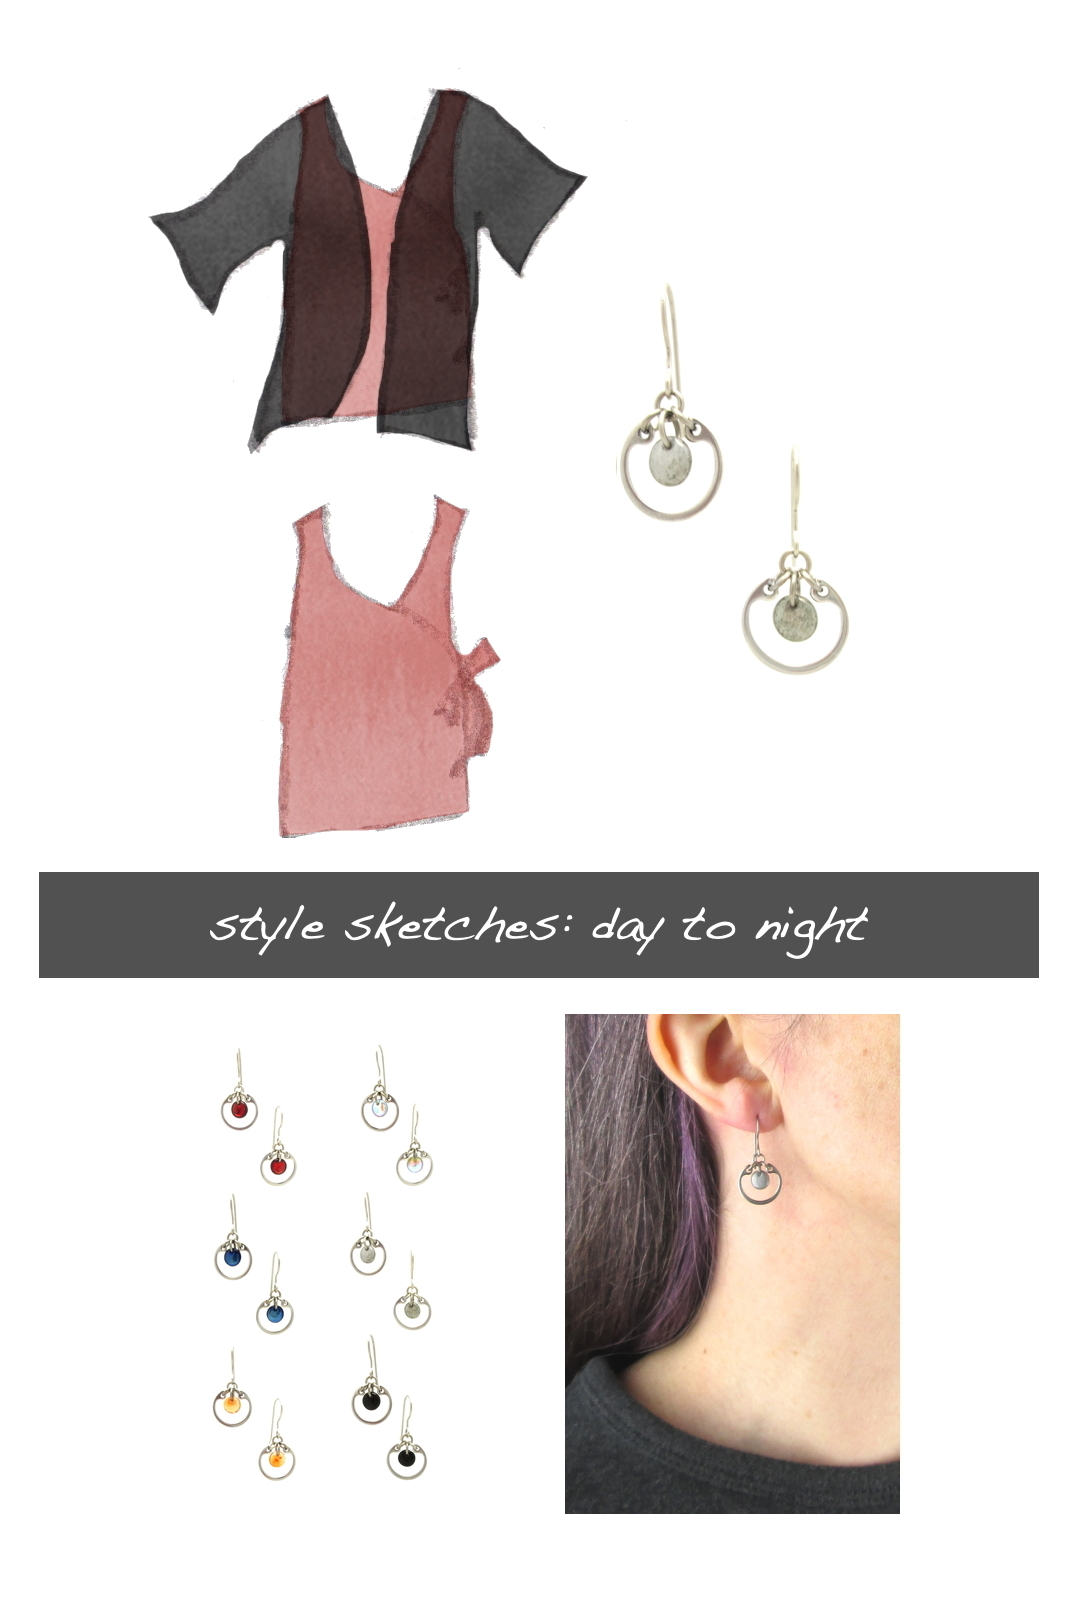 Compiled image with a style sketch of an outfit idea, with a rose pink sleeveless wrap top & black cardigan, with Wraptillion's small modern circle earrings in gray, a closeup modeled photo of the same earrings, and additional color choices for the small circle earrings. Text on image reads: style sketches: day to night.